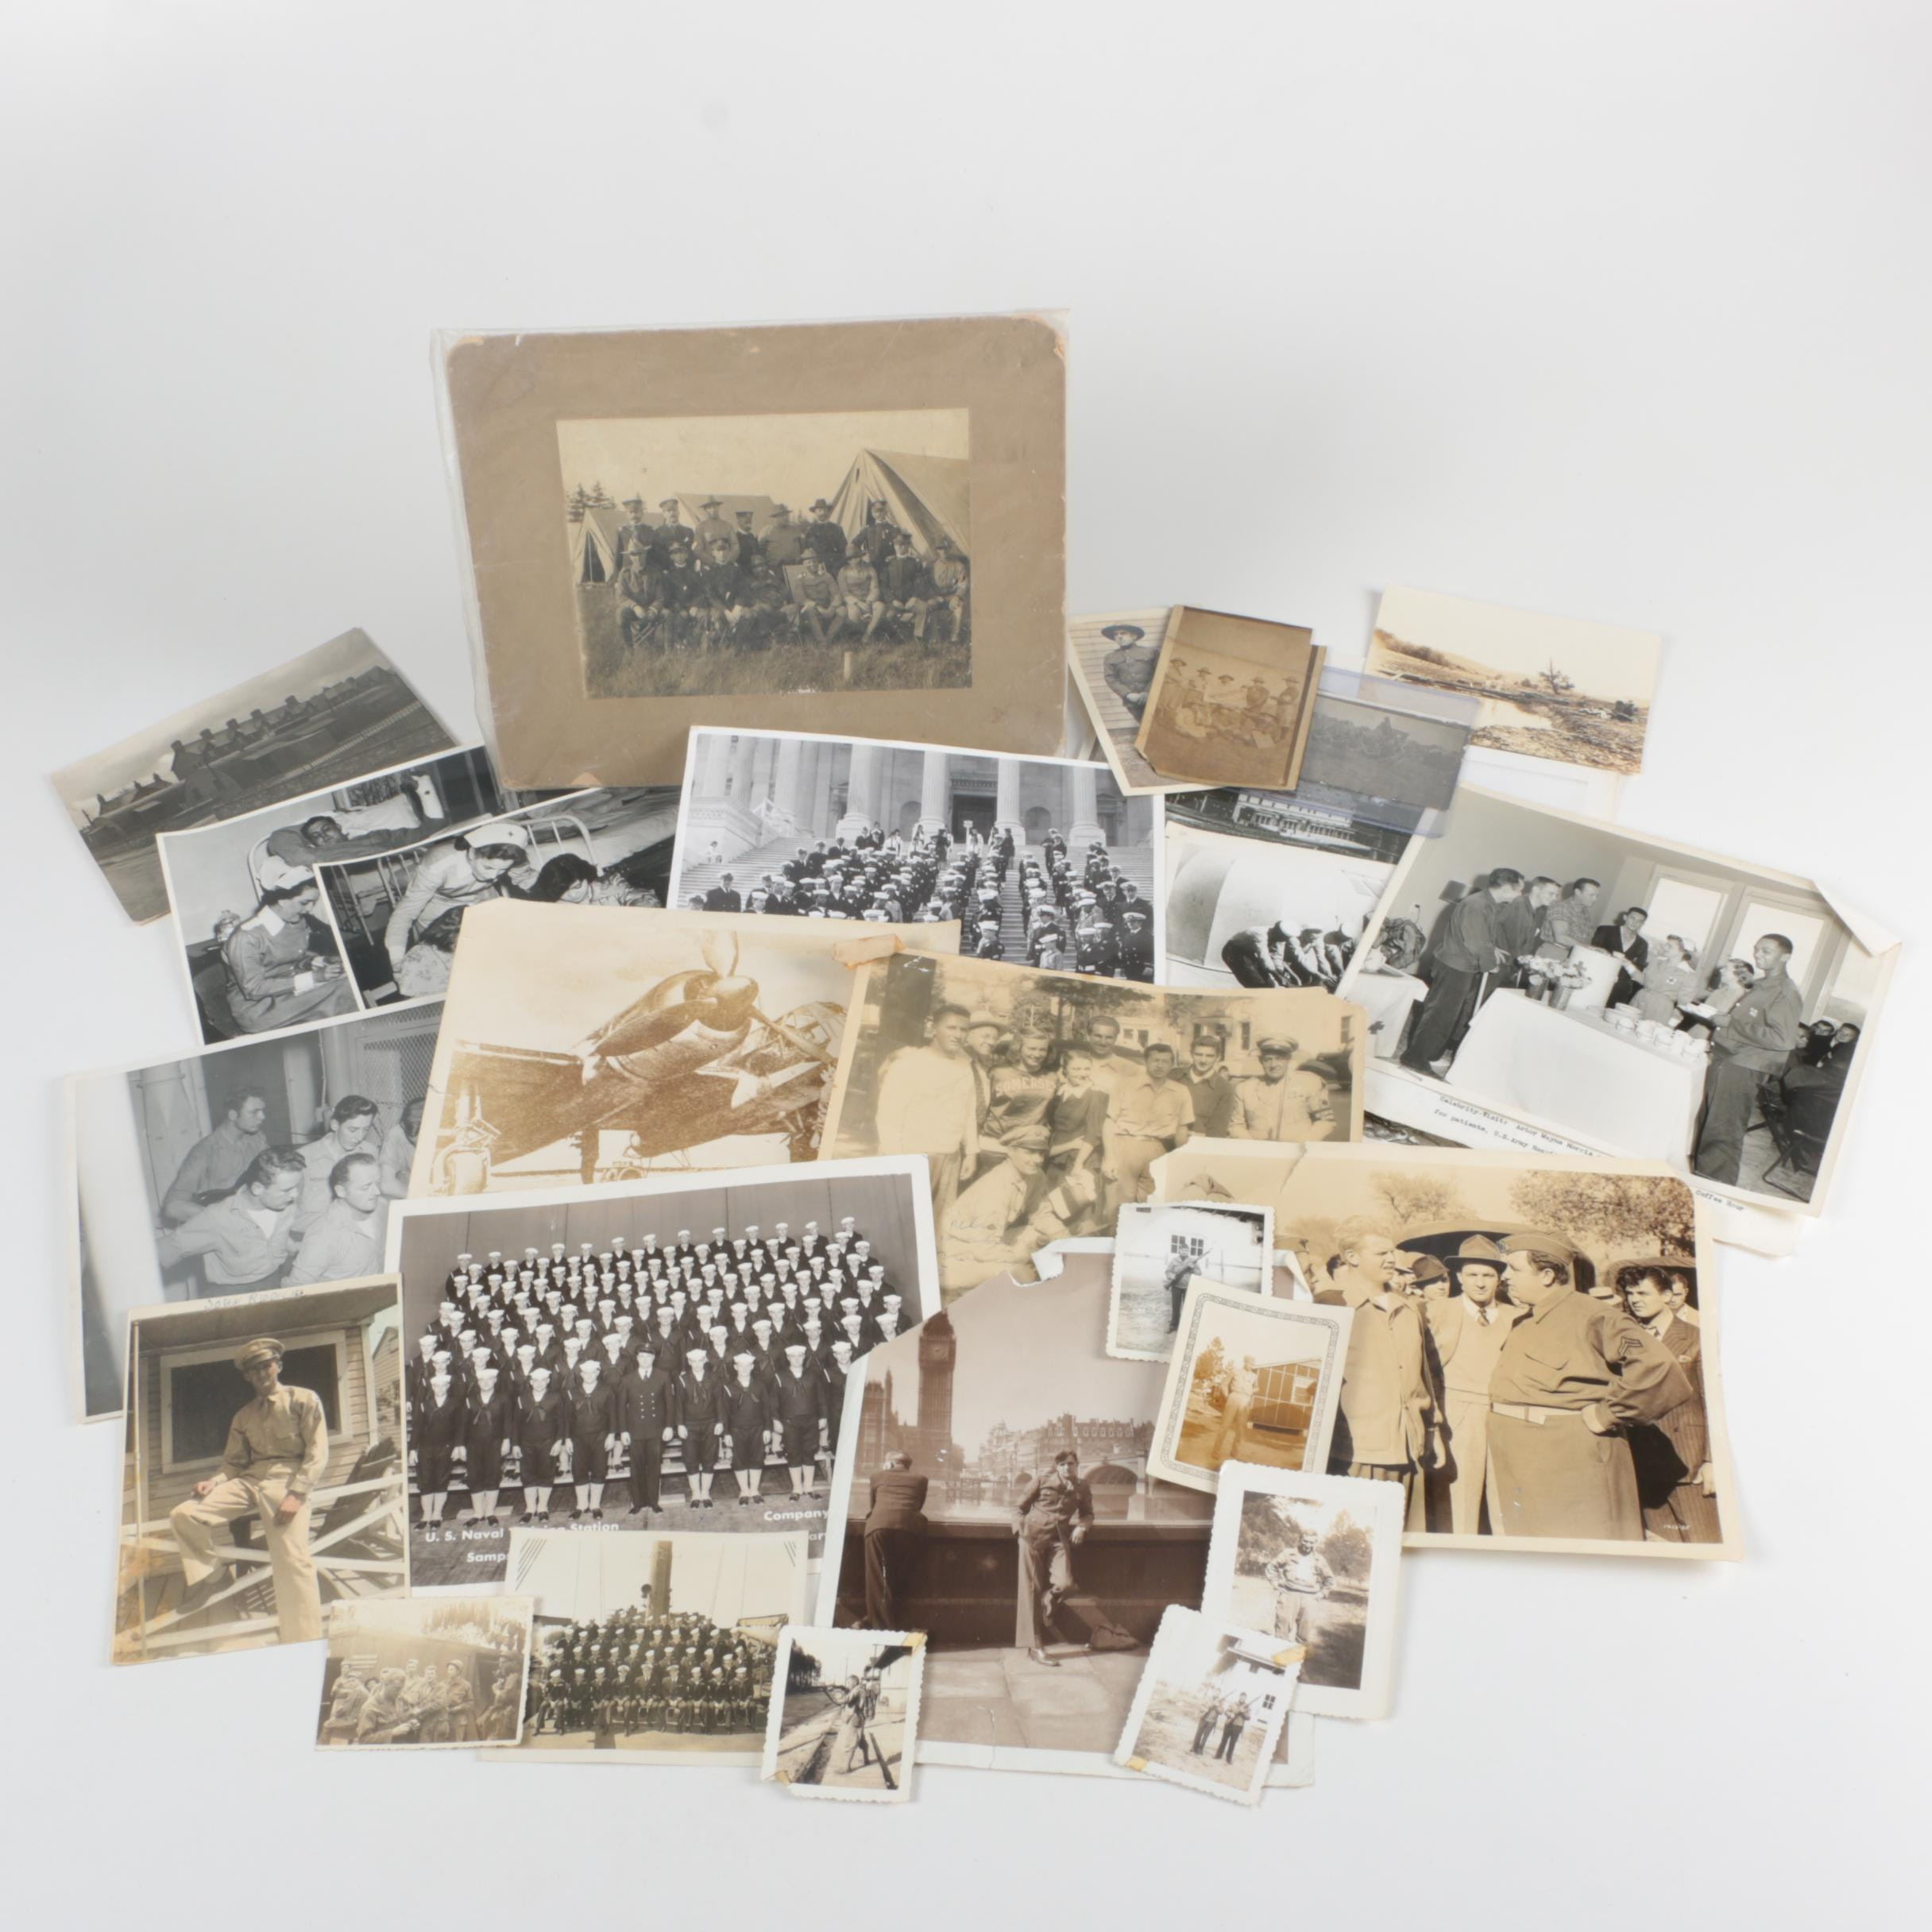 Vintage Photographs of Nurses and Military